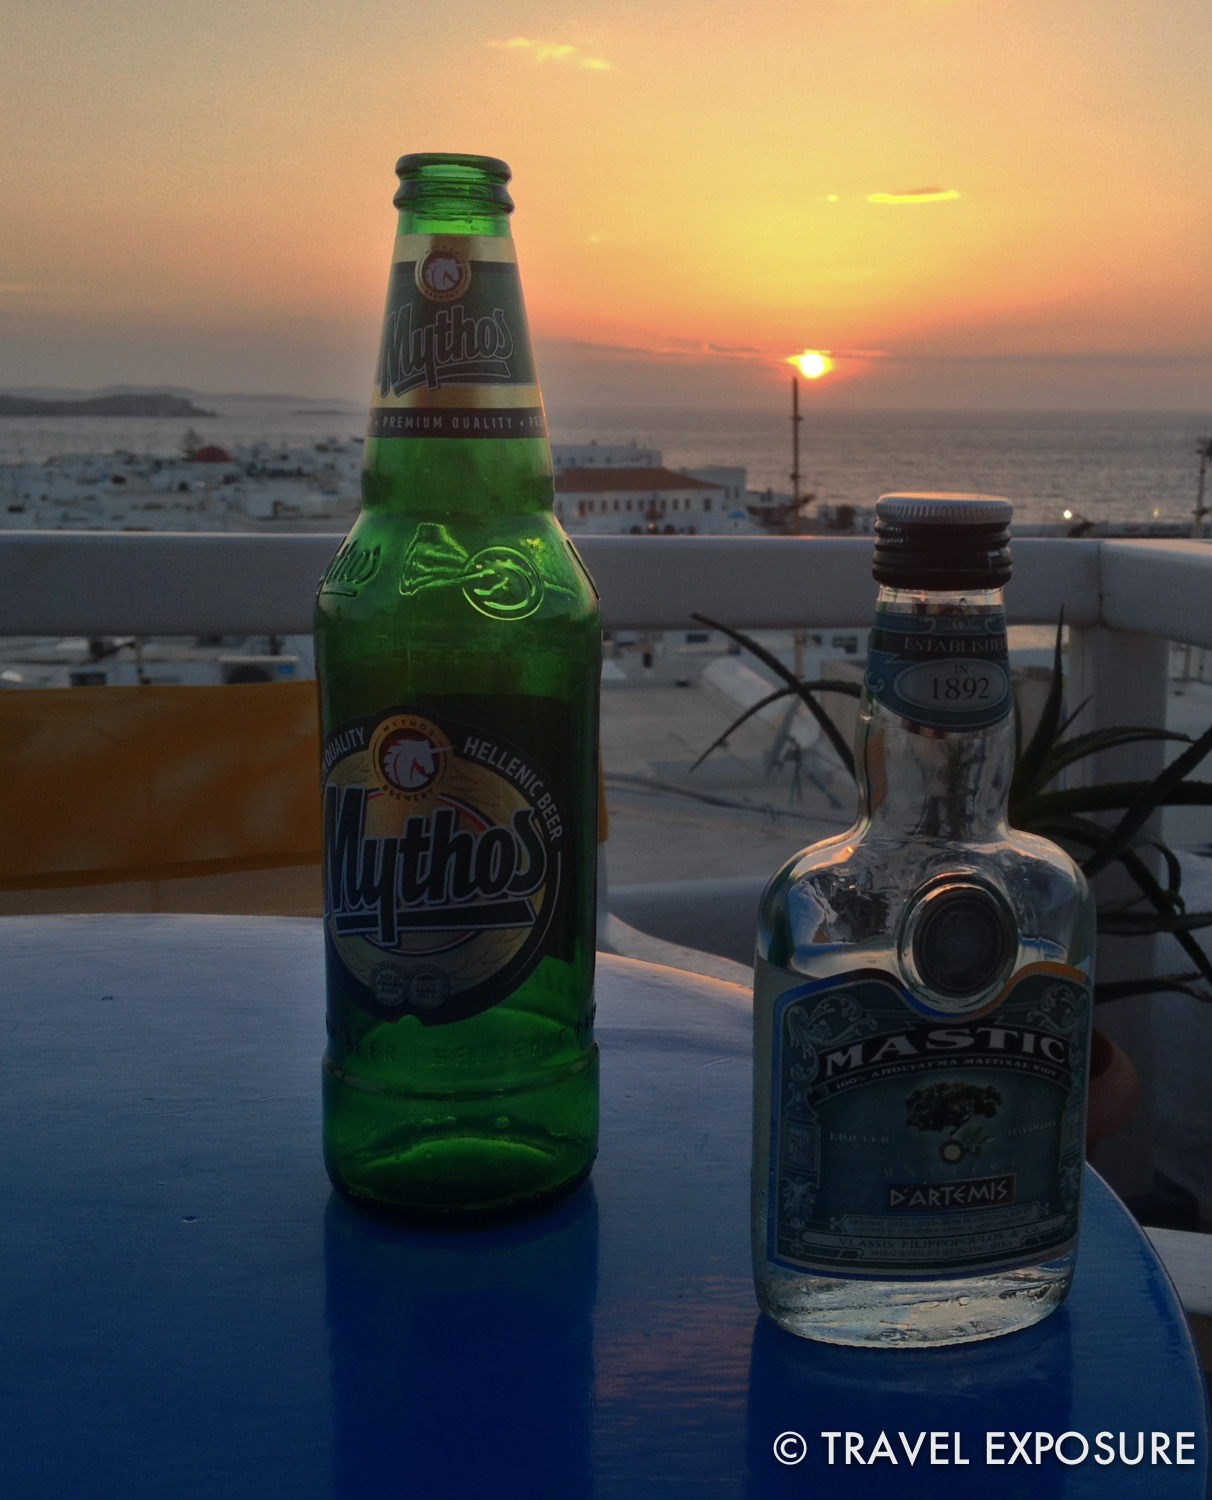 In Mykonos, at least the sunset was quality :)